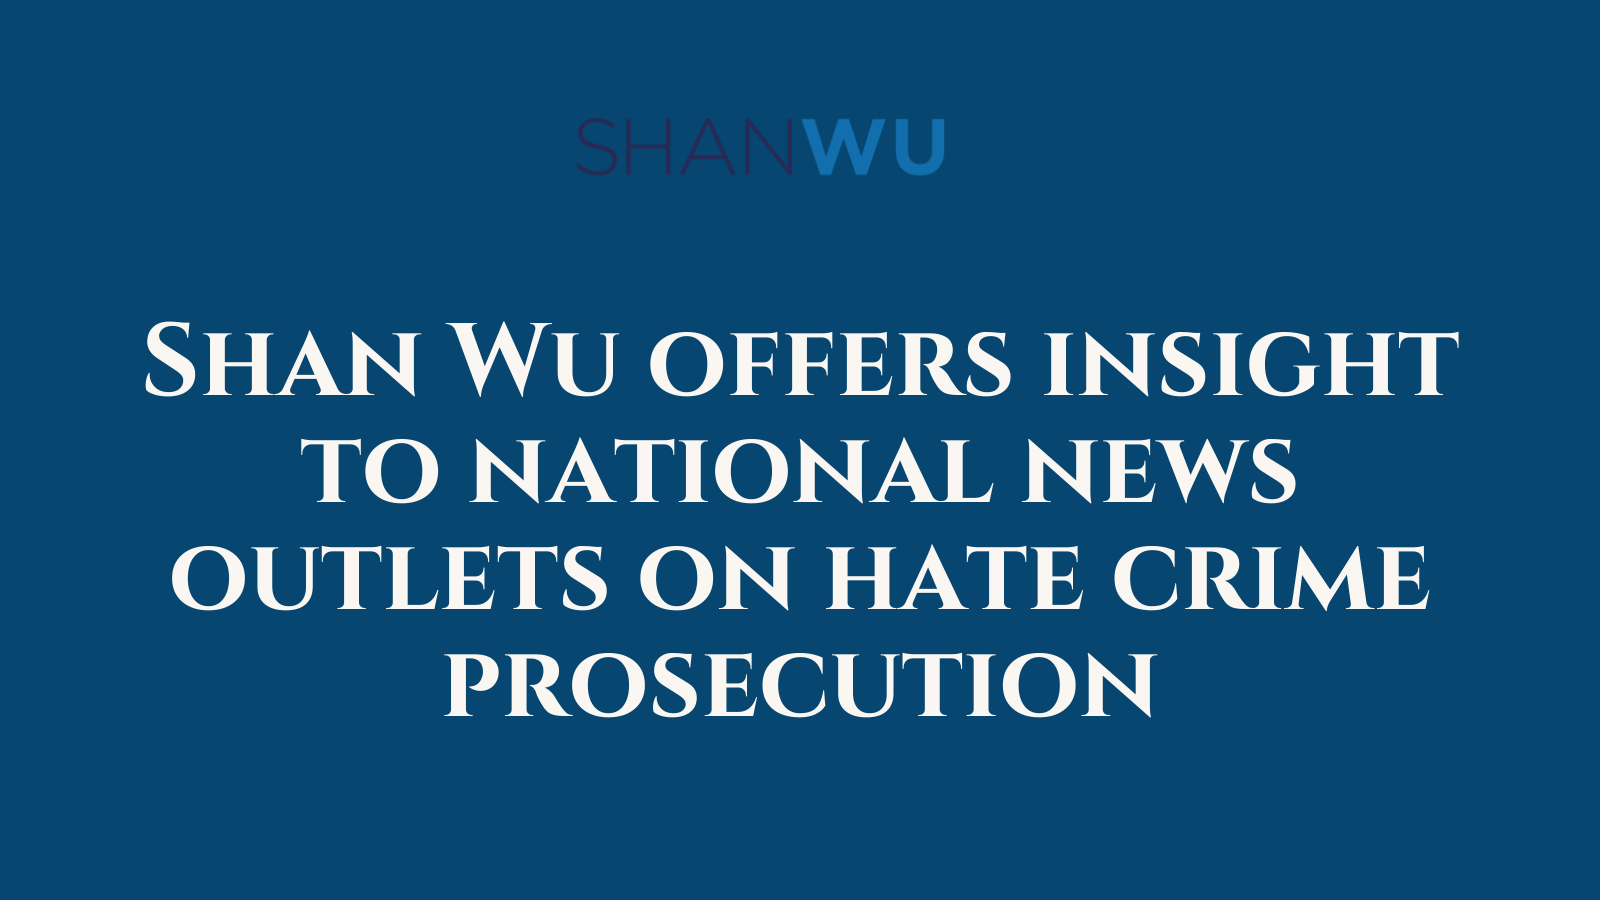 Shan Wu offers insight to national news outlets on hate crime prosecution - Shanlon Wu